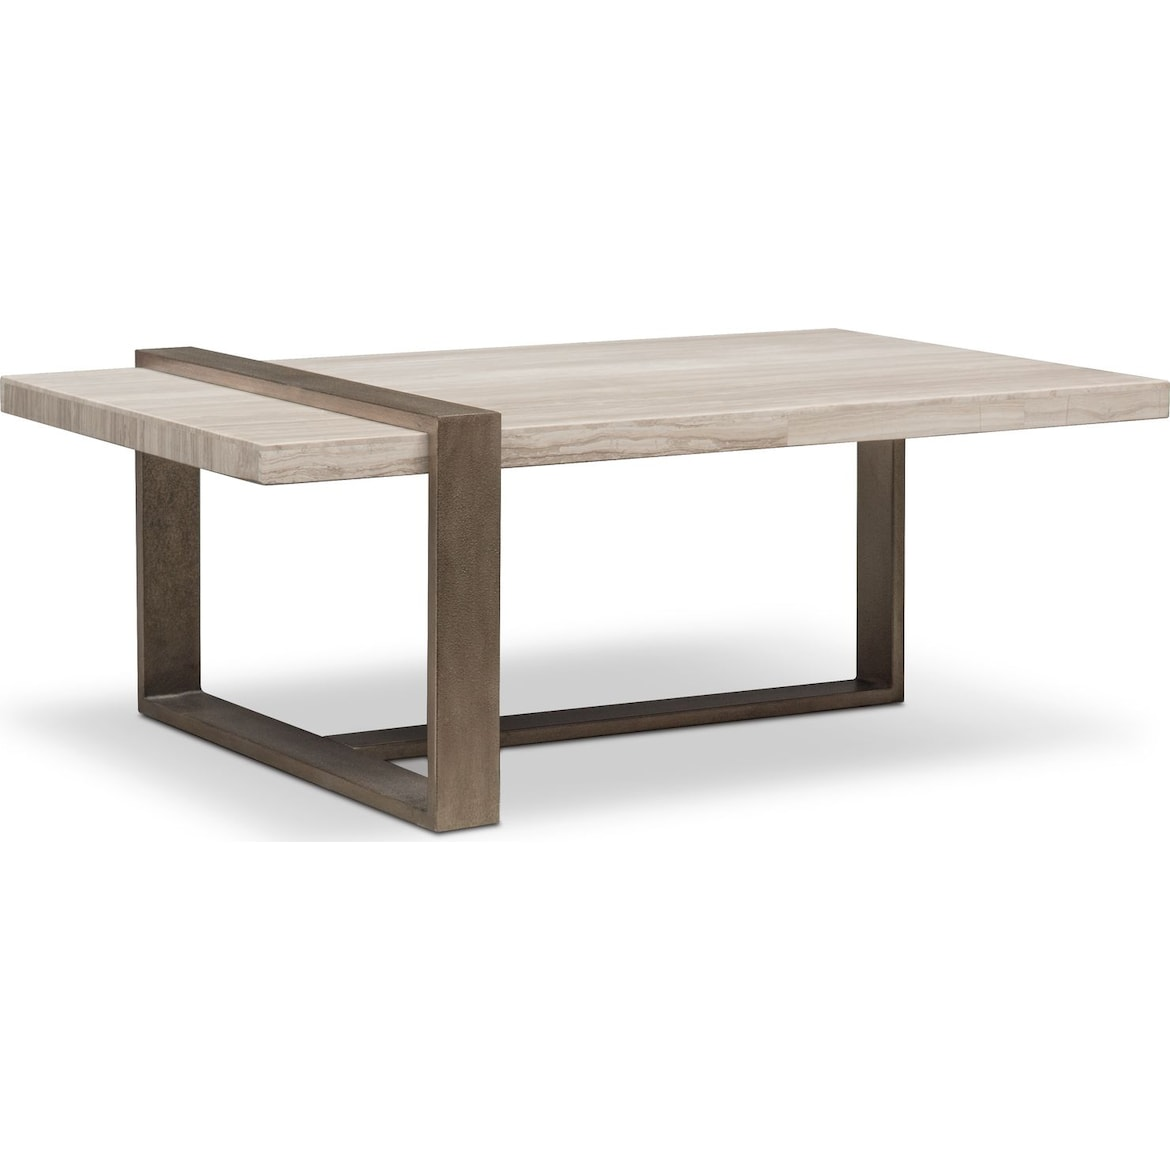 30 Live Edge Coffee Tables That Transform The Living Room: American Signature Furniture